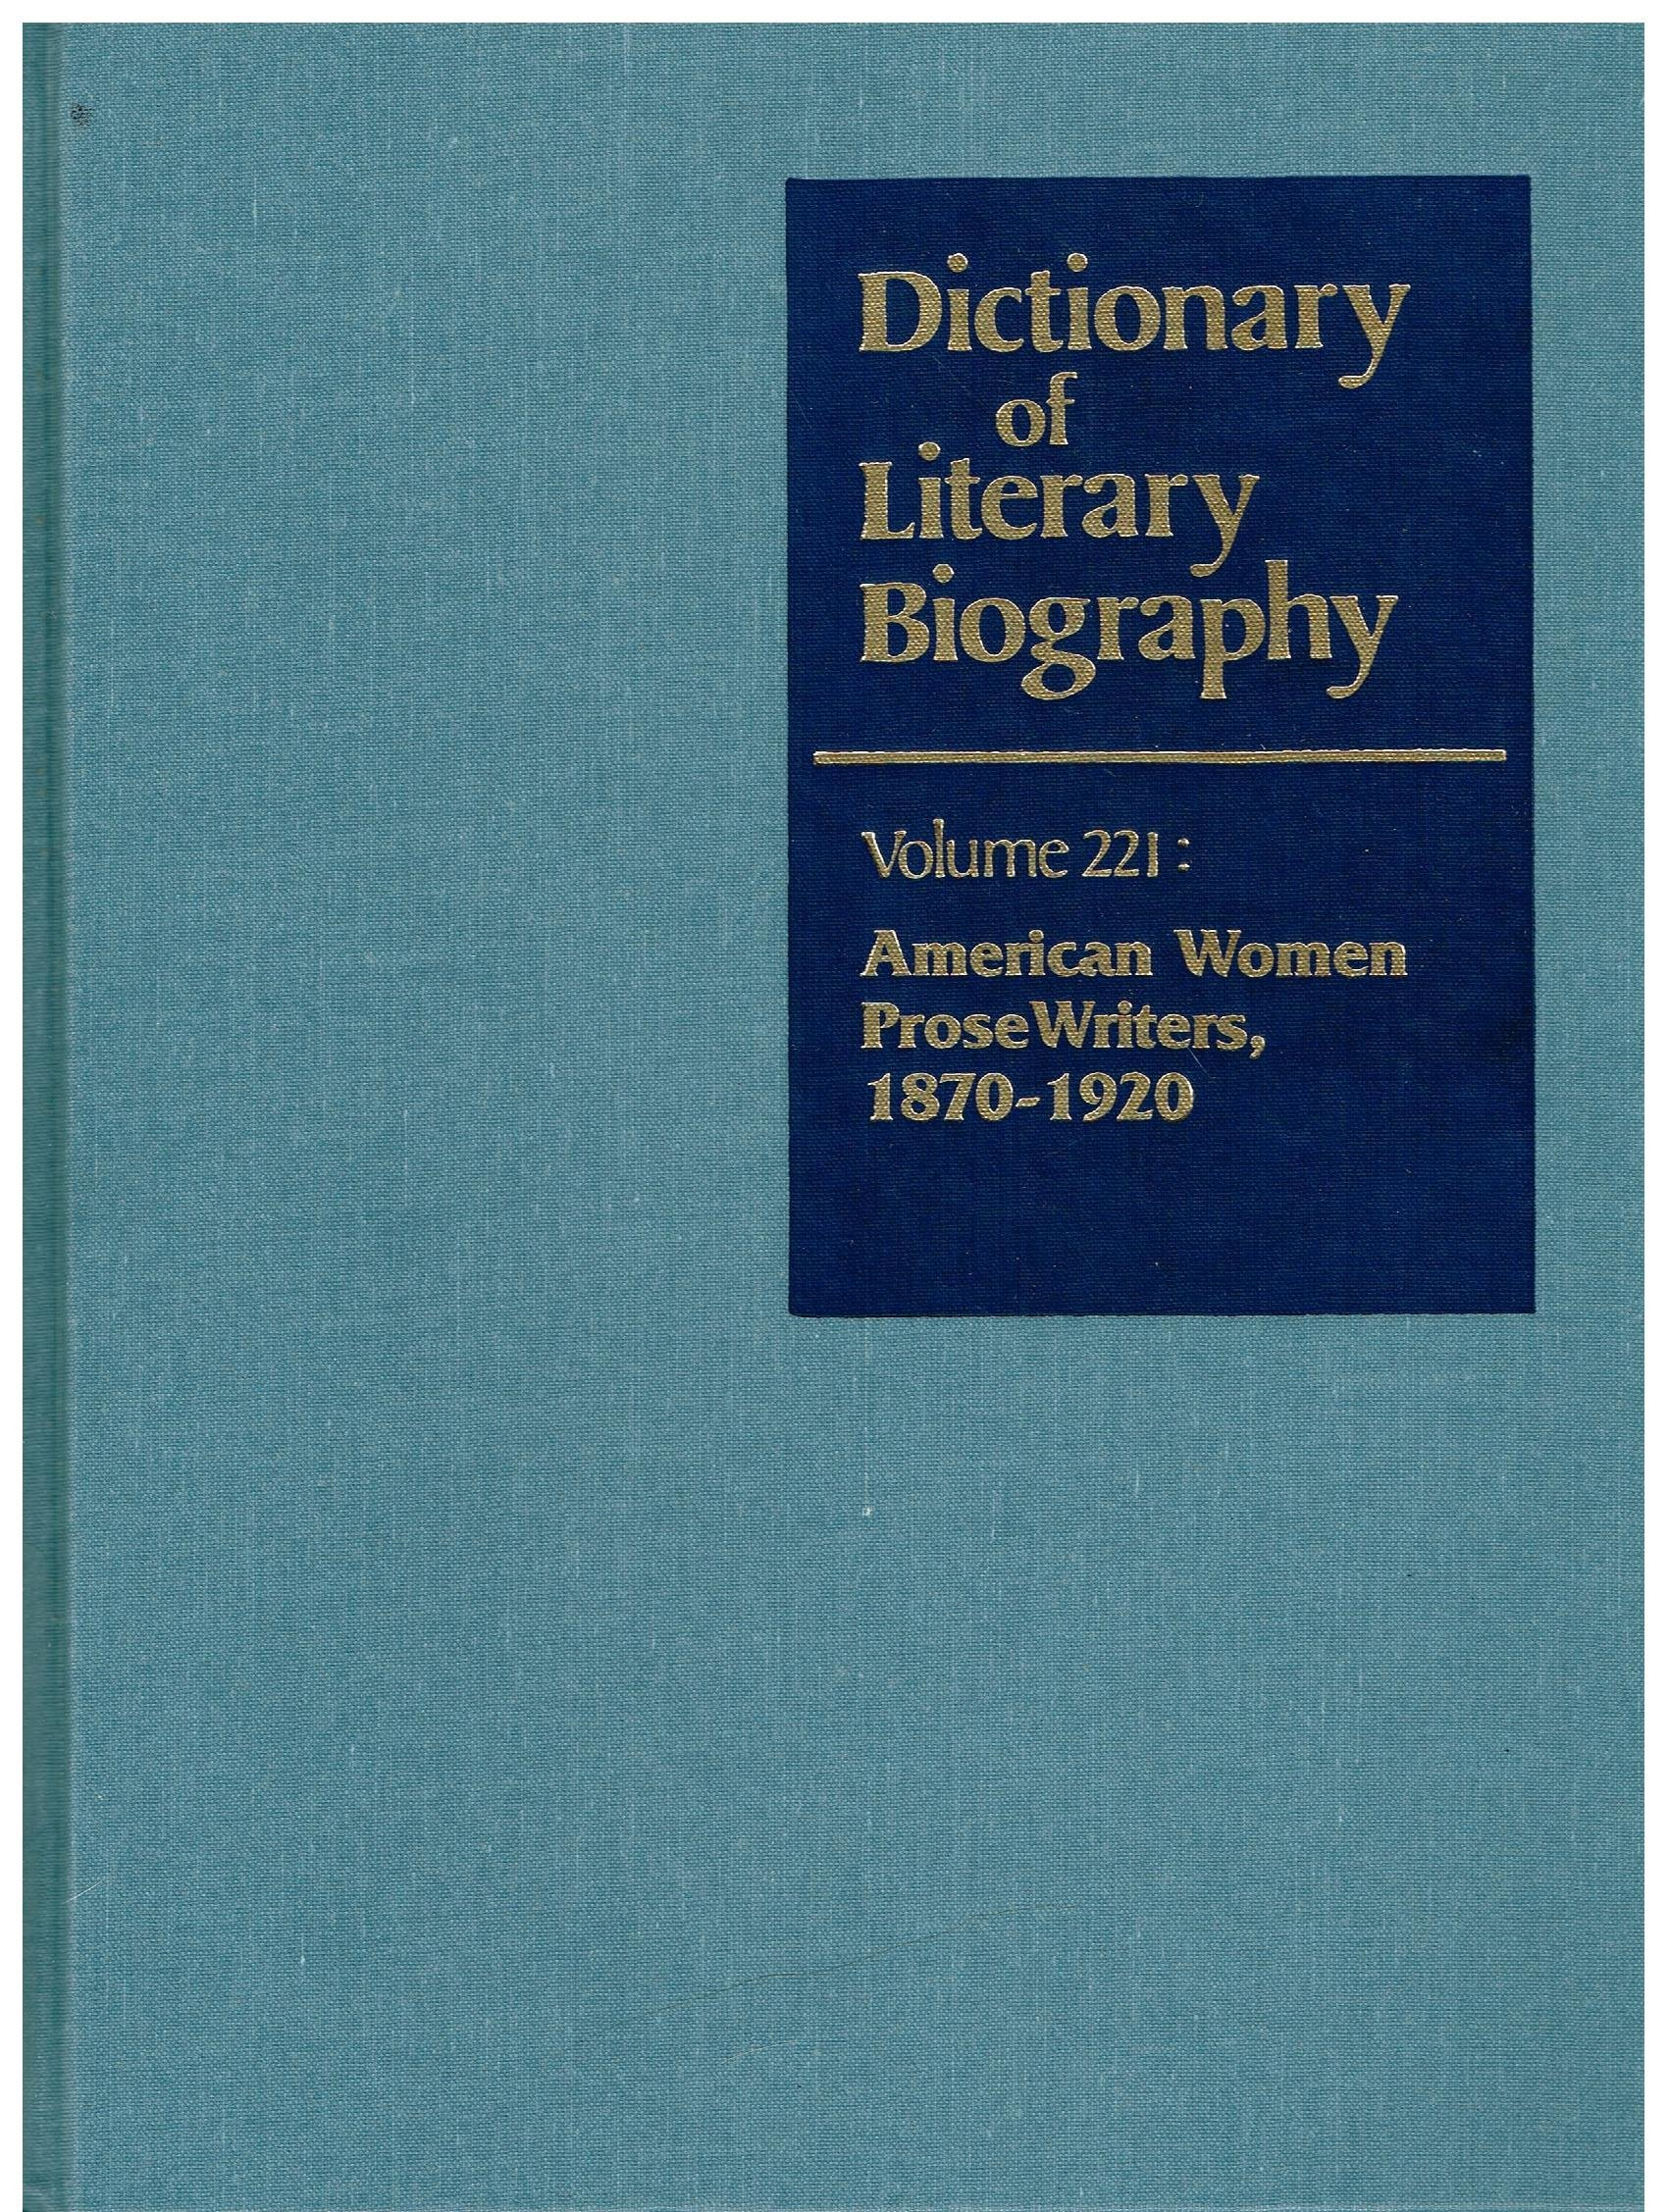 American Women Prose Writers, 1870-1920, Vol. 221 written by Sharon Harris